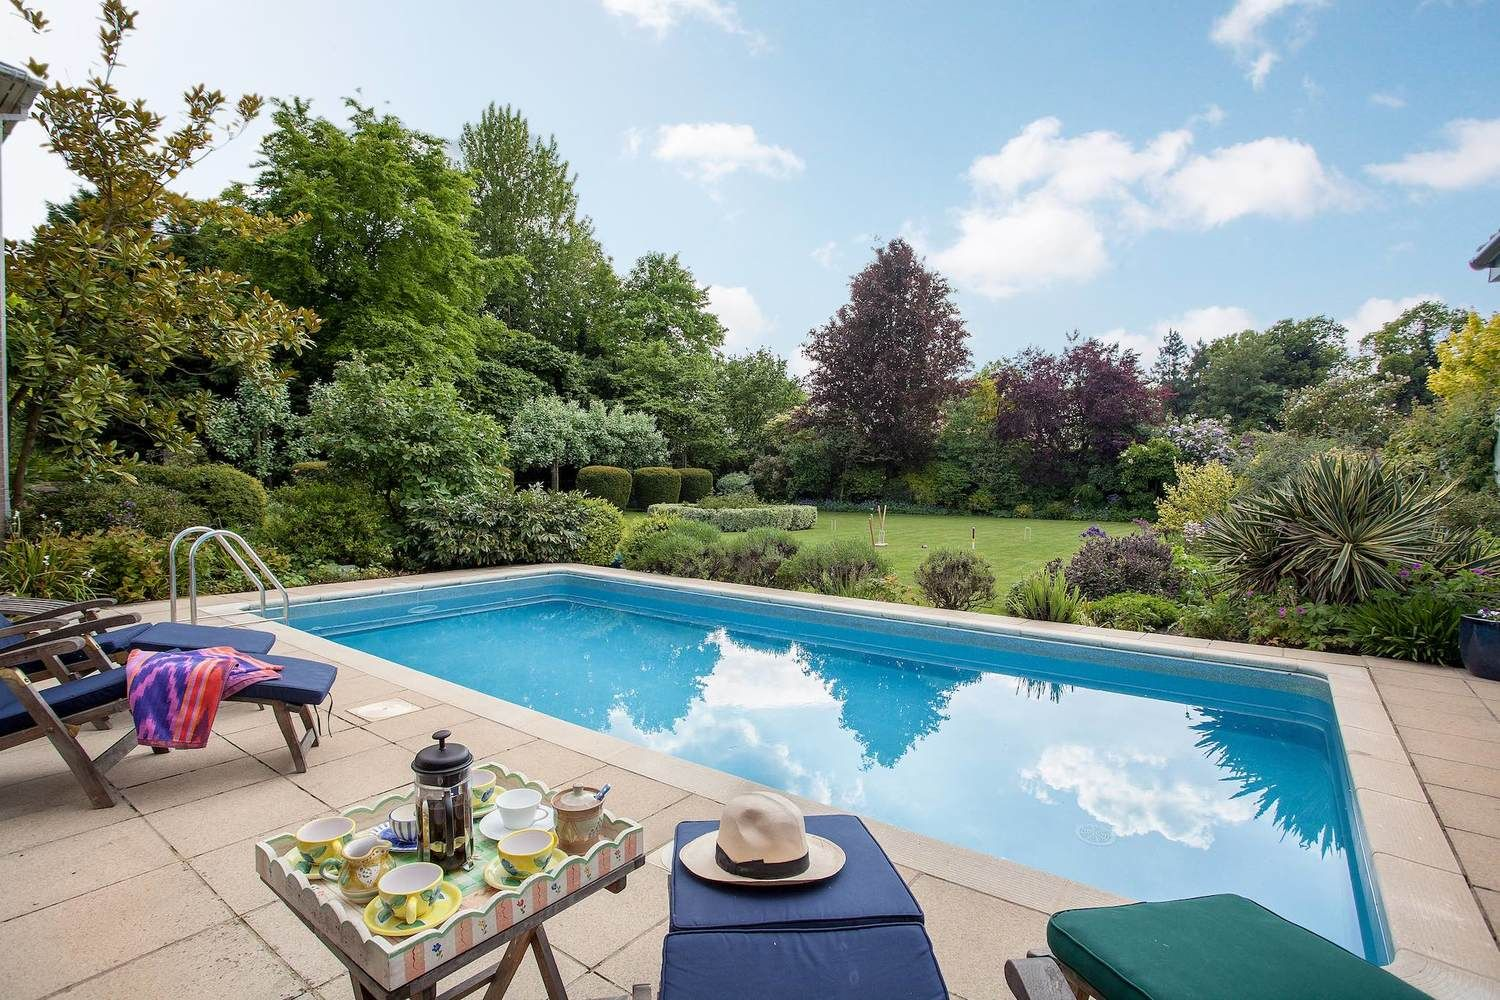 Heated swimming pool with views across the Walled Garden